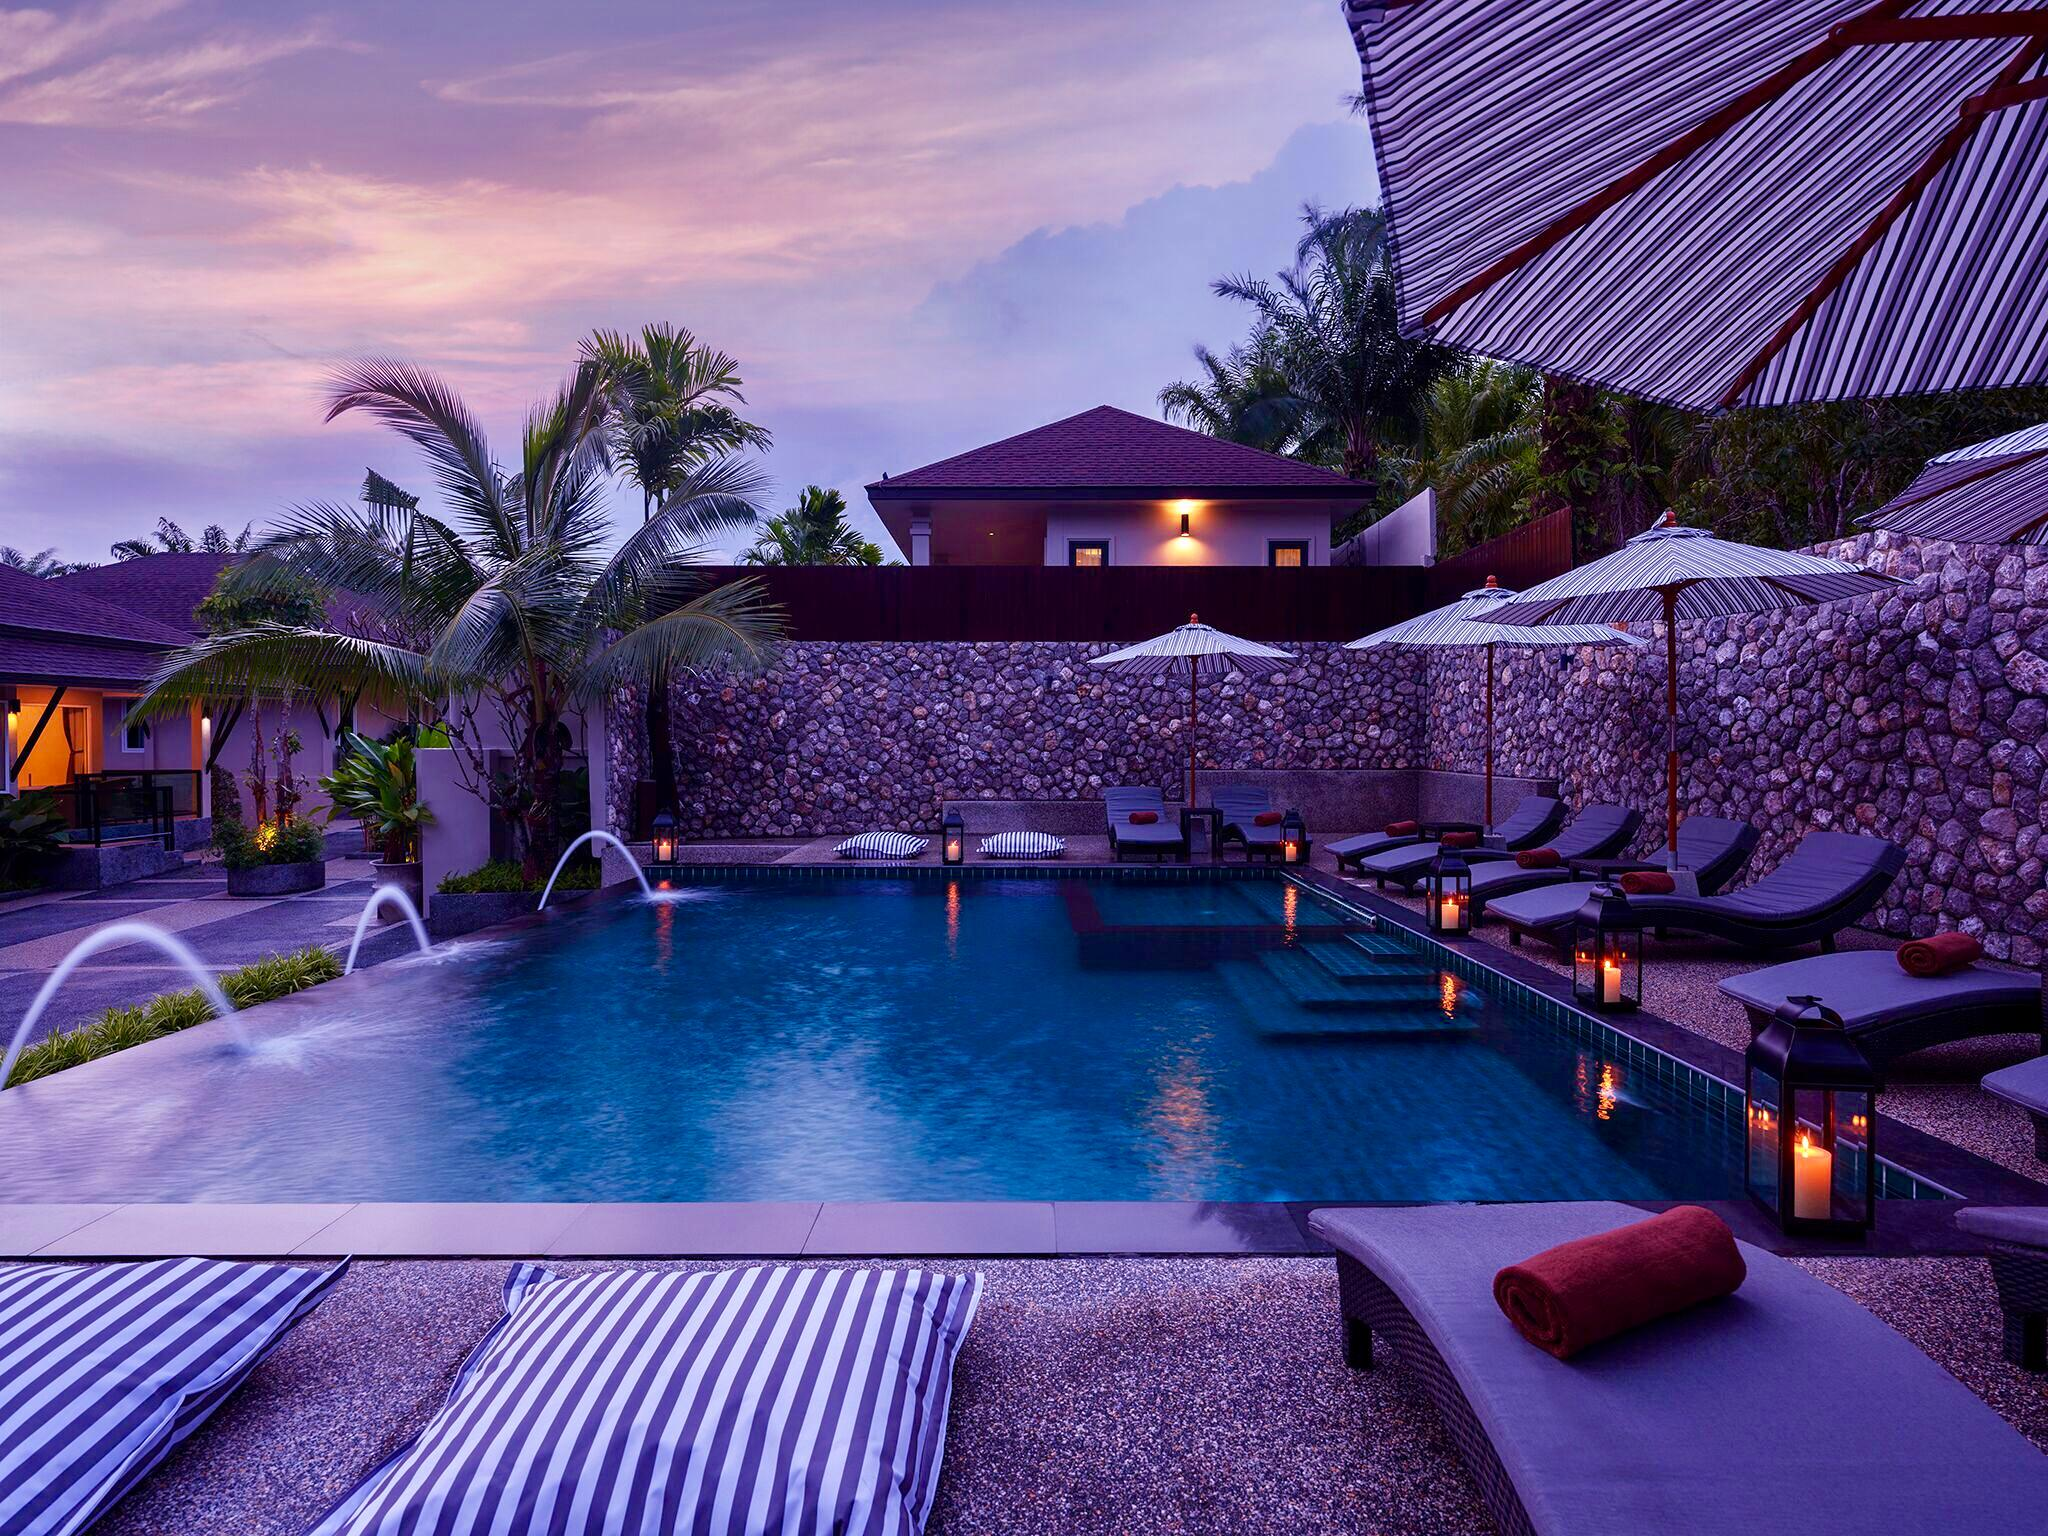 Best Price on De Malee Pool Villa in Krabi Reviews